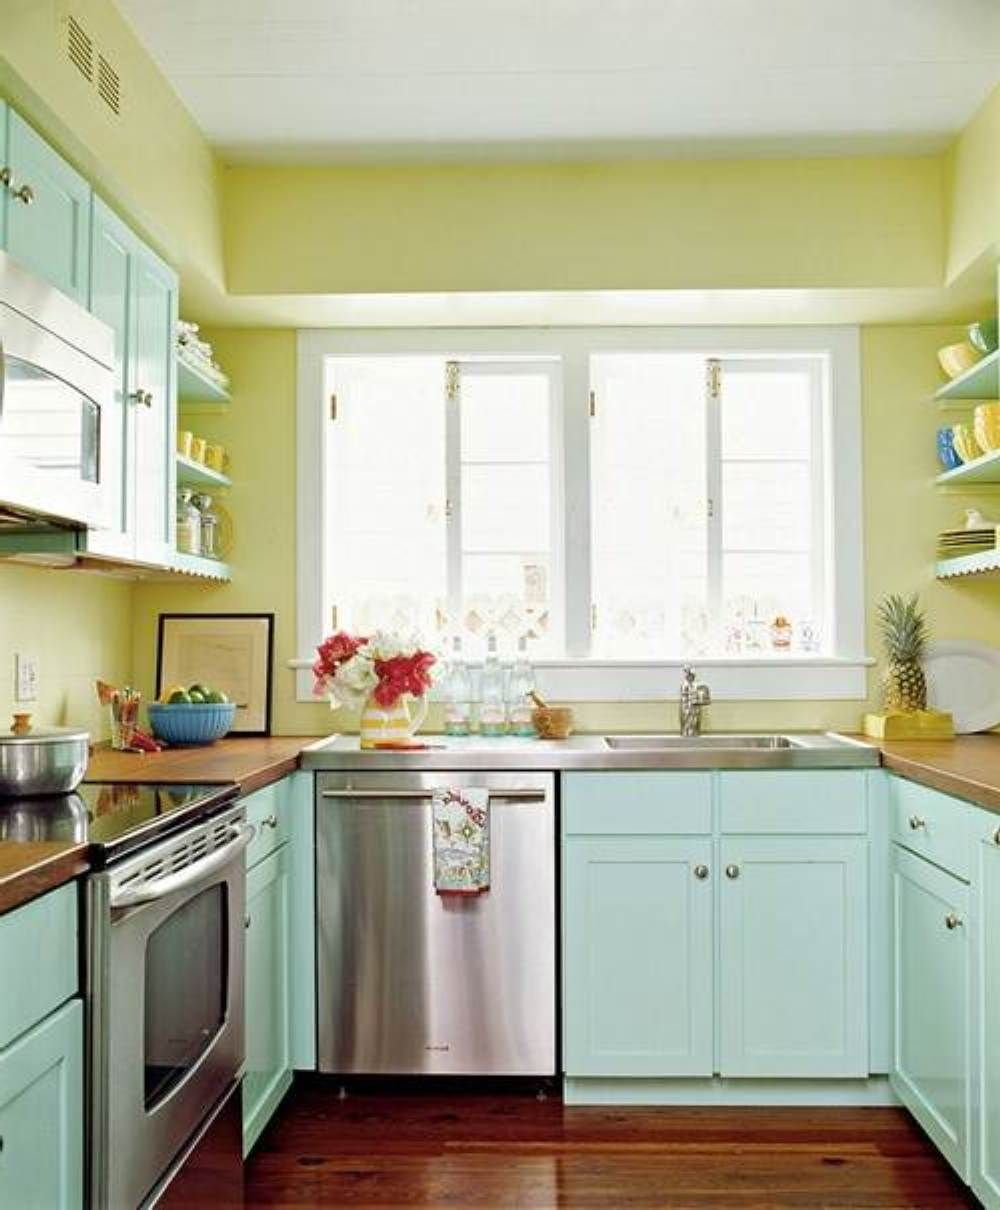 Impressive Ideas Kitchen Paint Colors With Maple Cabinets: Small Kitchen Design Ideas